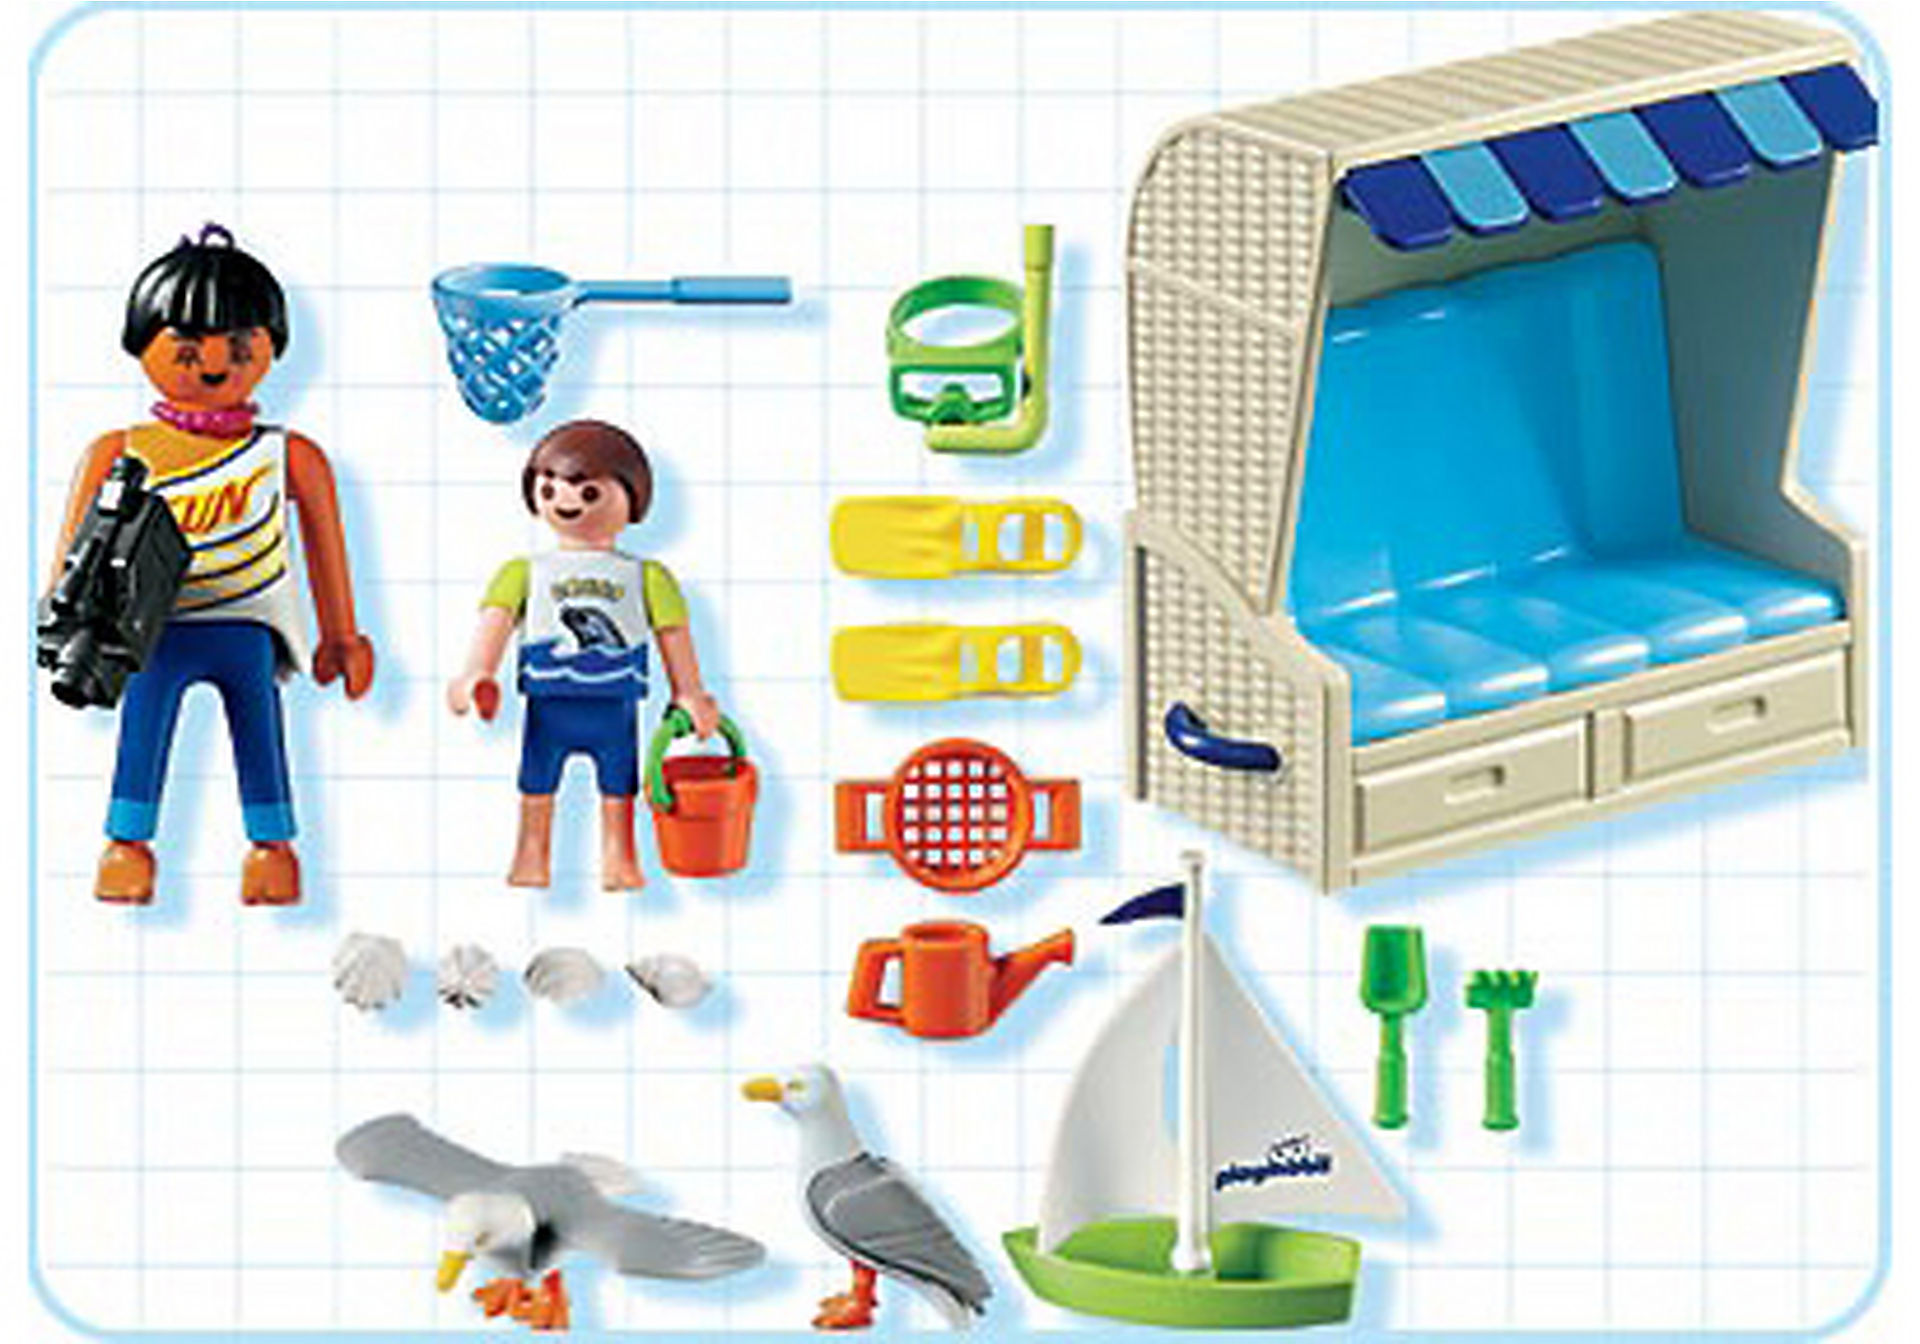 http://media.playmobil.com/i/playmobil/3660-B_product_box_back/Strandkorb